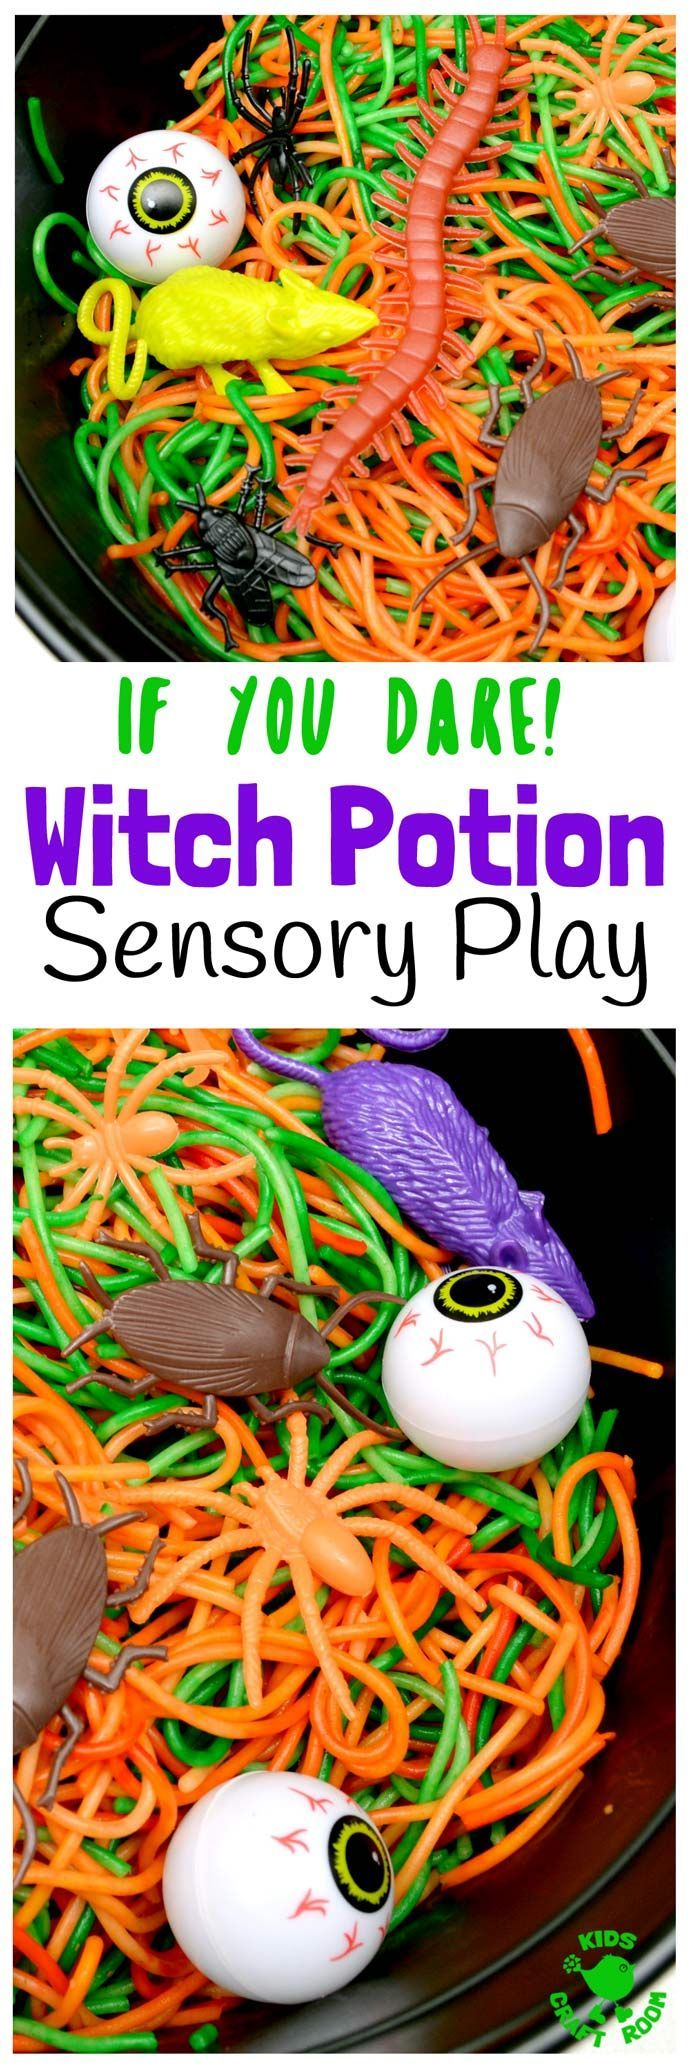 WITCH'S POTION HALLOWEEN SENSORY PLAY IDEA - Have you got a little witch or wizard with a love for the YUK? Kids will be spellbound getting hands on with this fun Witch's Potion Halloween Sensory Play Activity!   via @KidsCraftRoom